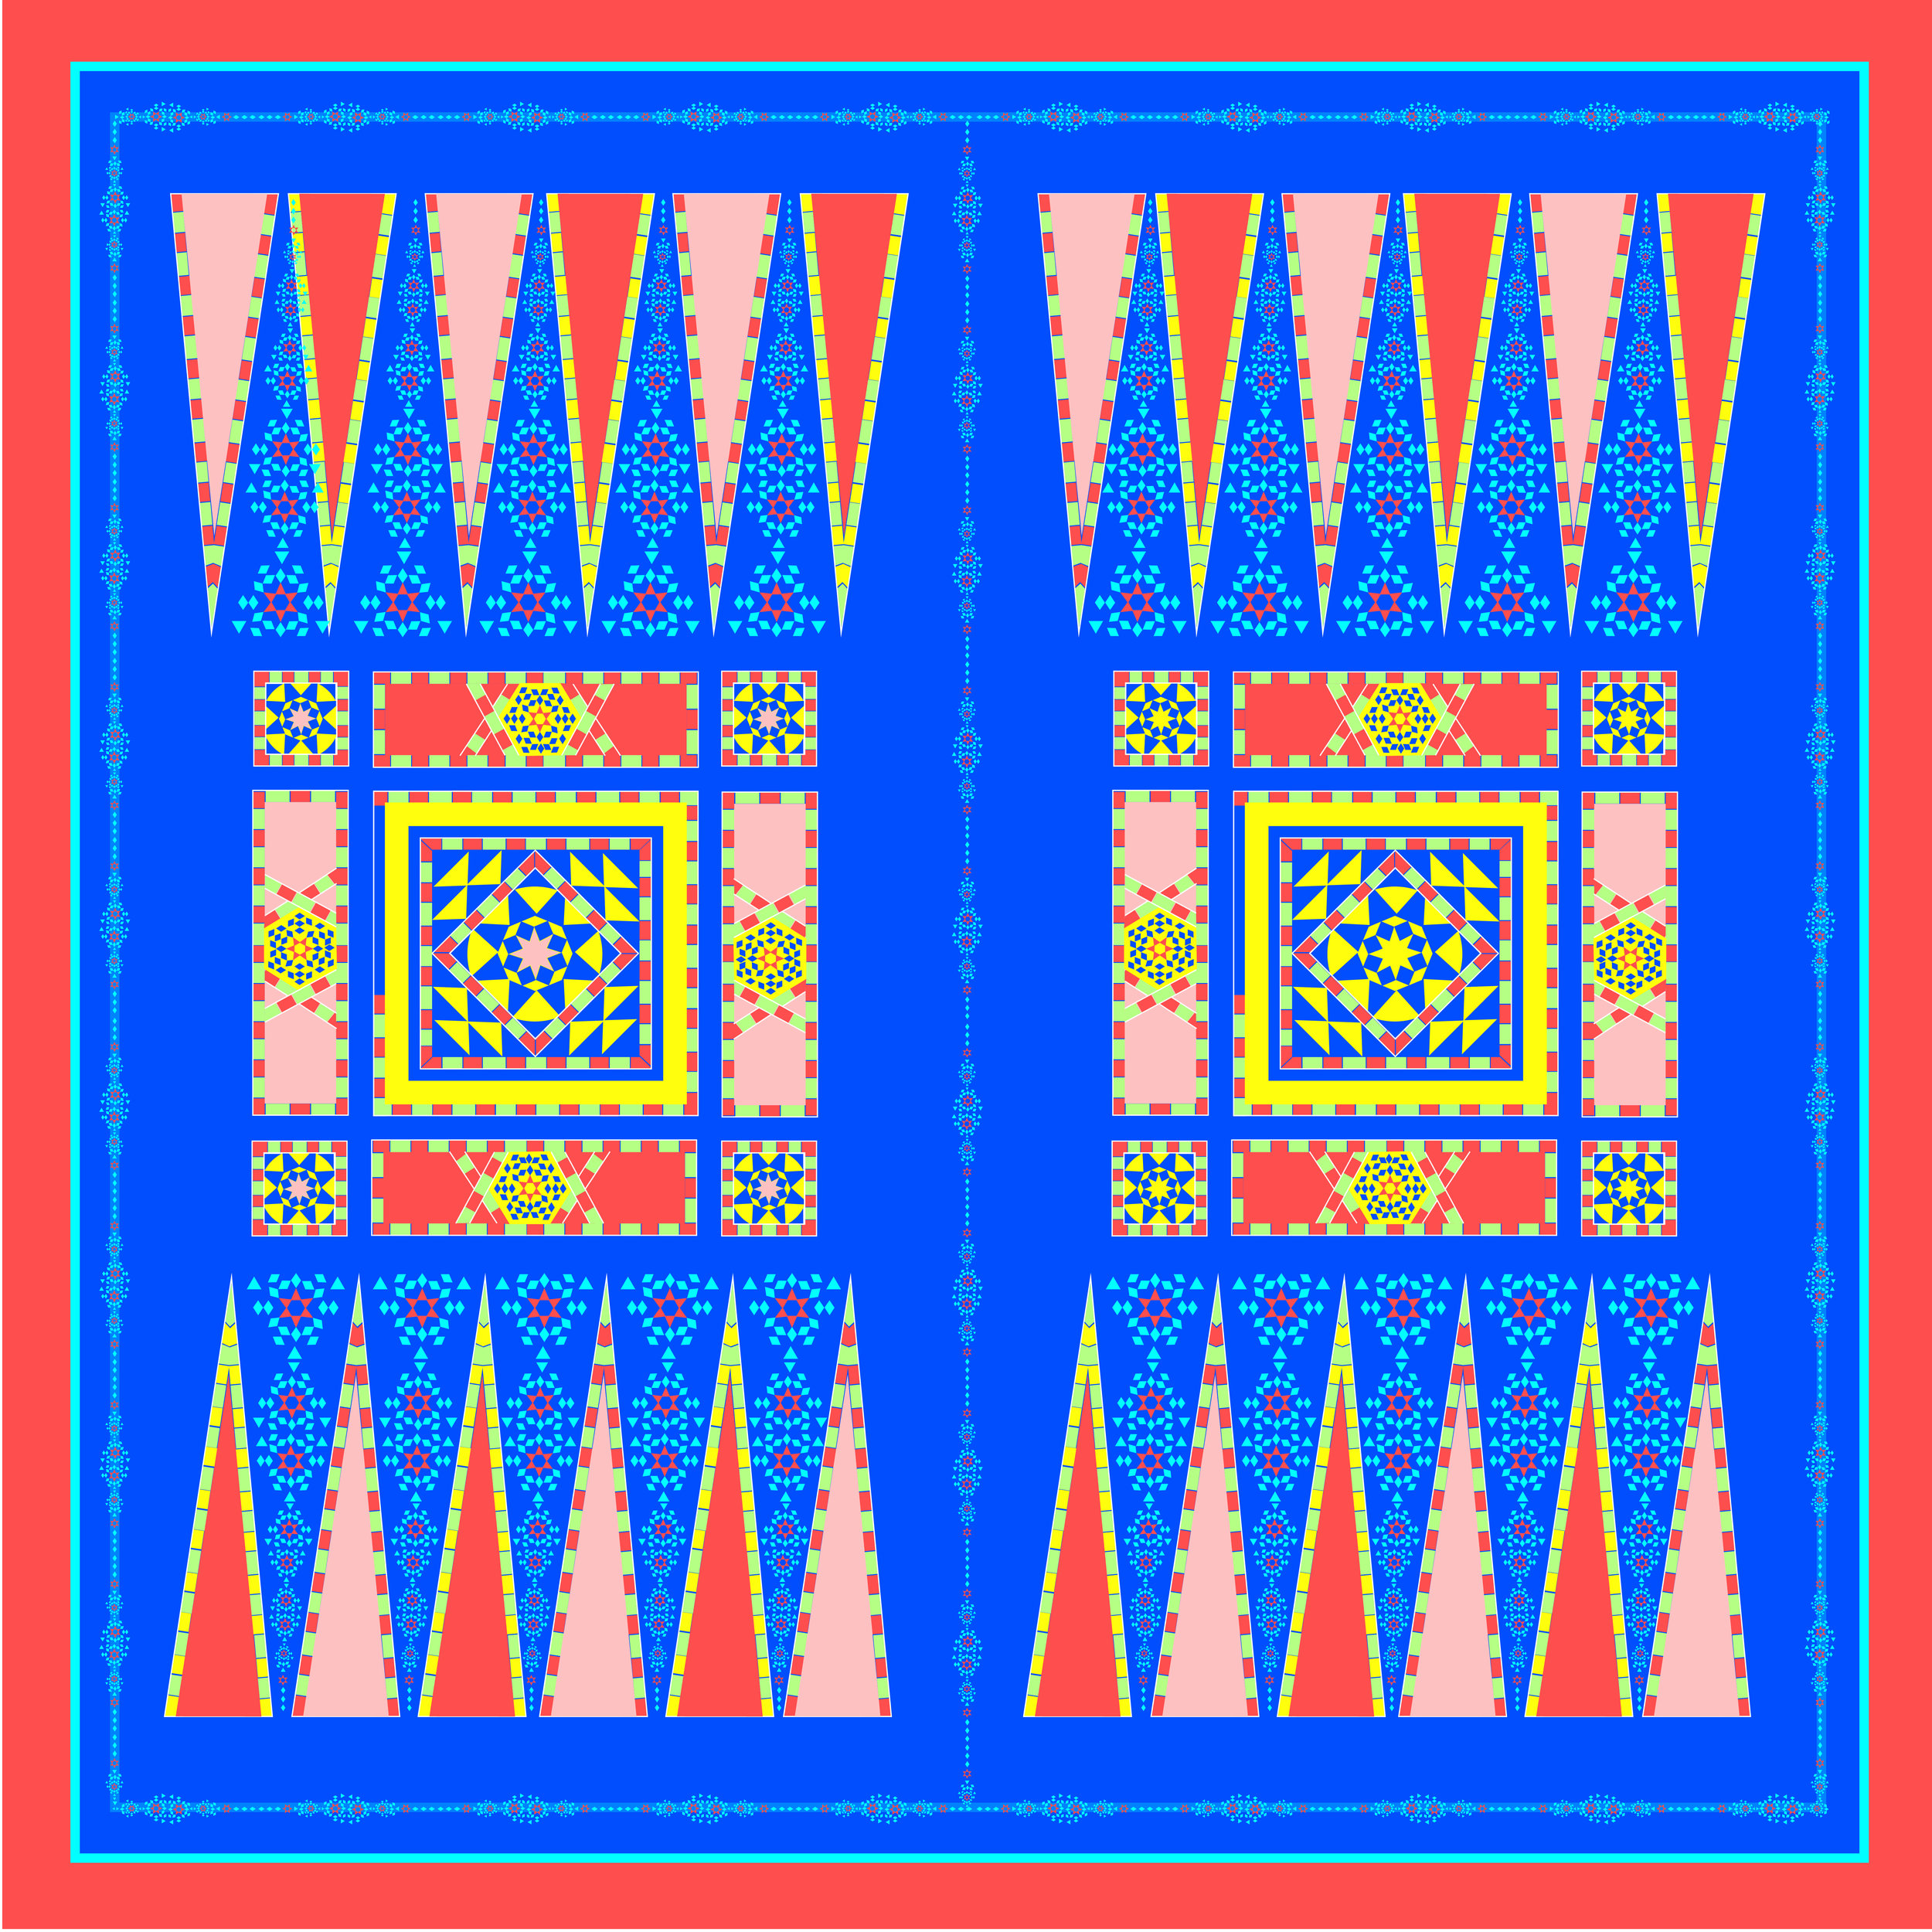 My backgammon/Middle East pattern-inspired Hermès scarf. Designed by Marina Murad.